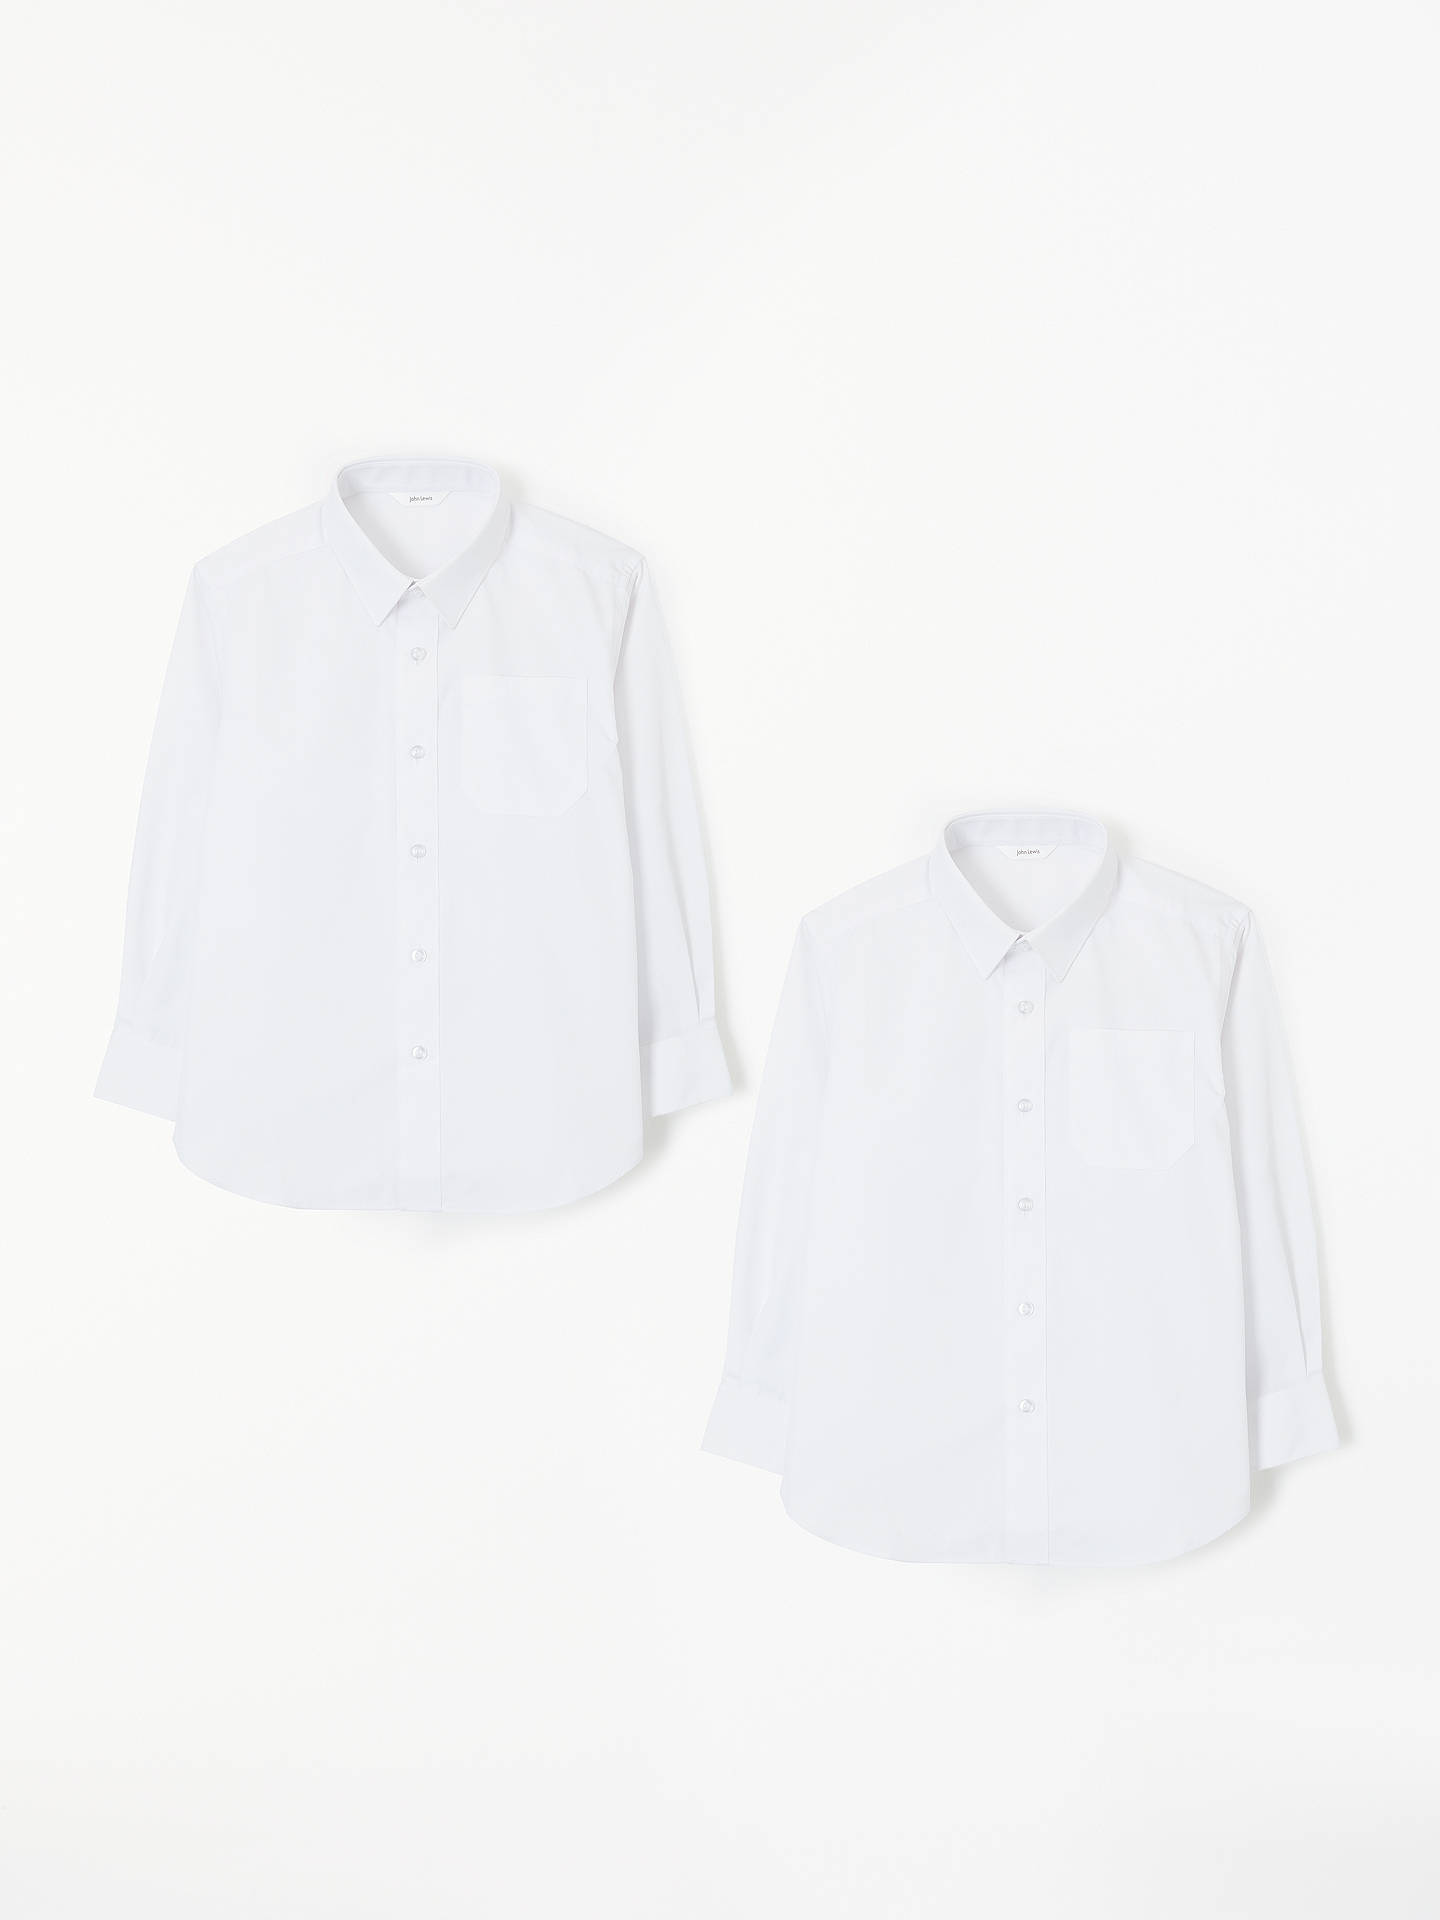 BuyJohn Lewis & Partners Easy Care Long Sleeve School Shirt, Pack of 2, White, 3 years Online at johnlewis.com